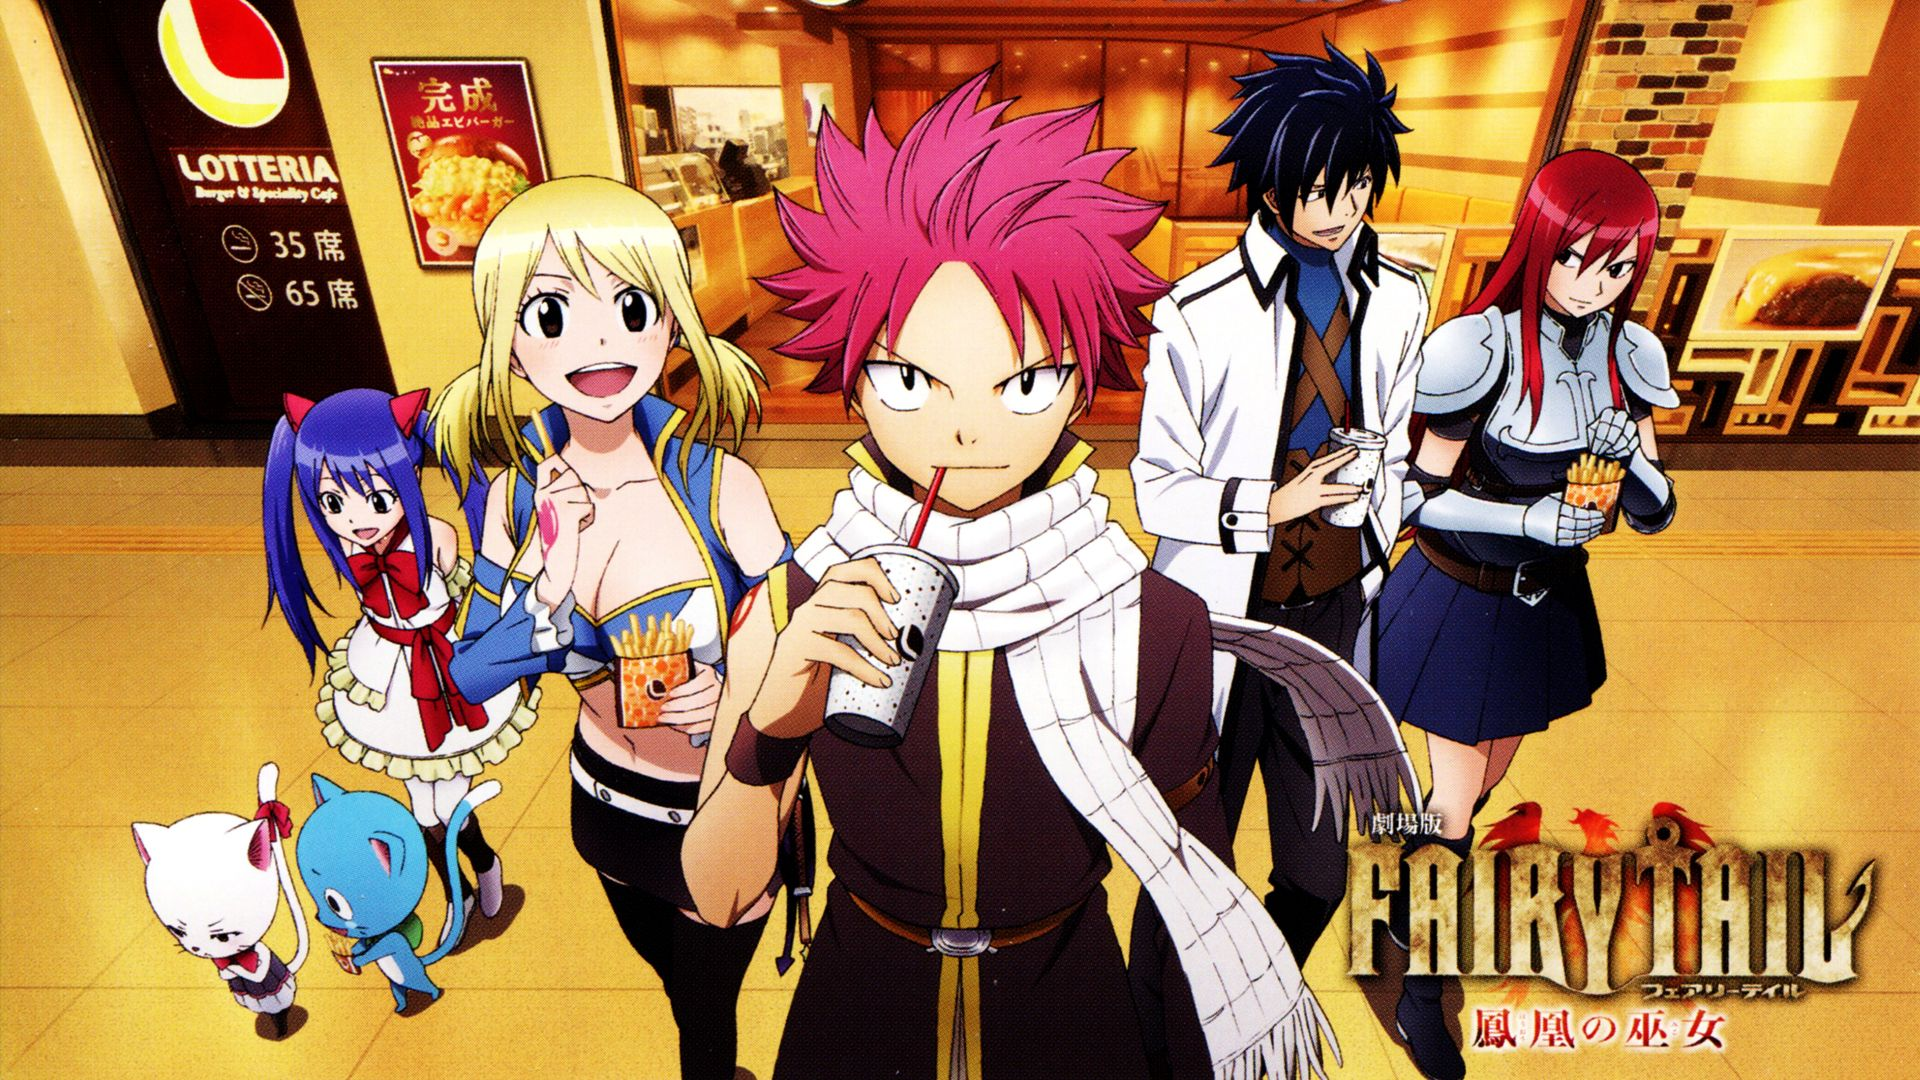 fairy tail anime hd. 1920x1080 1080p wallpaper and